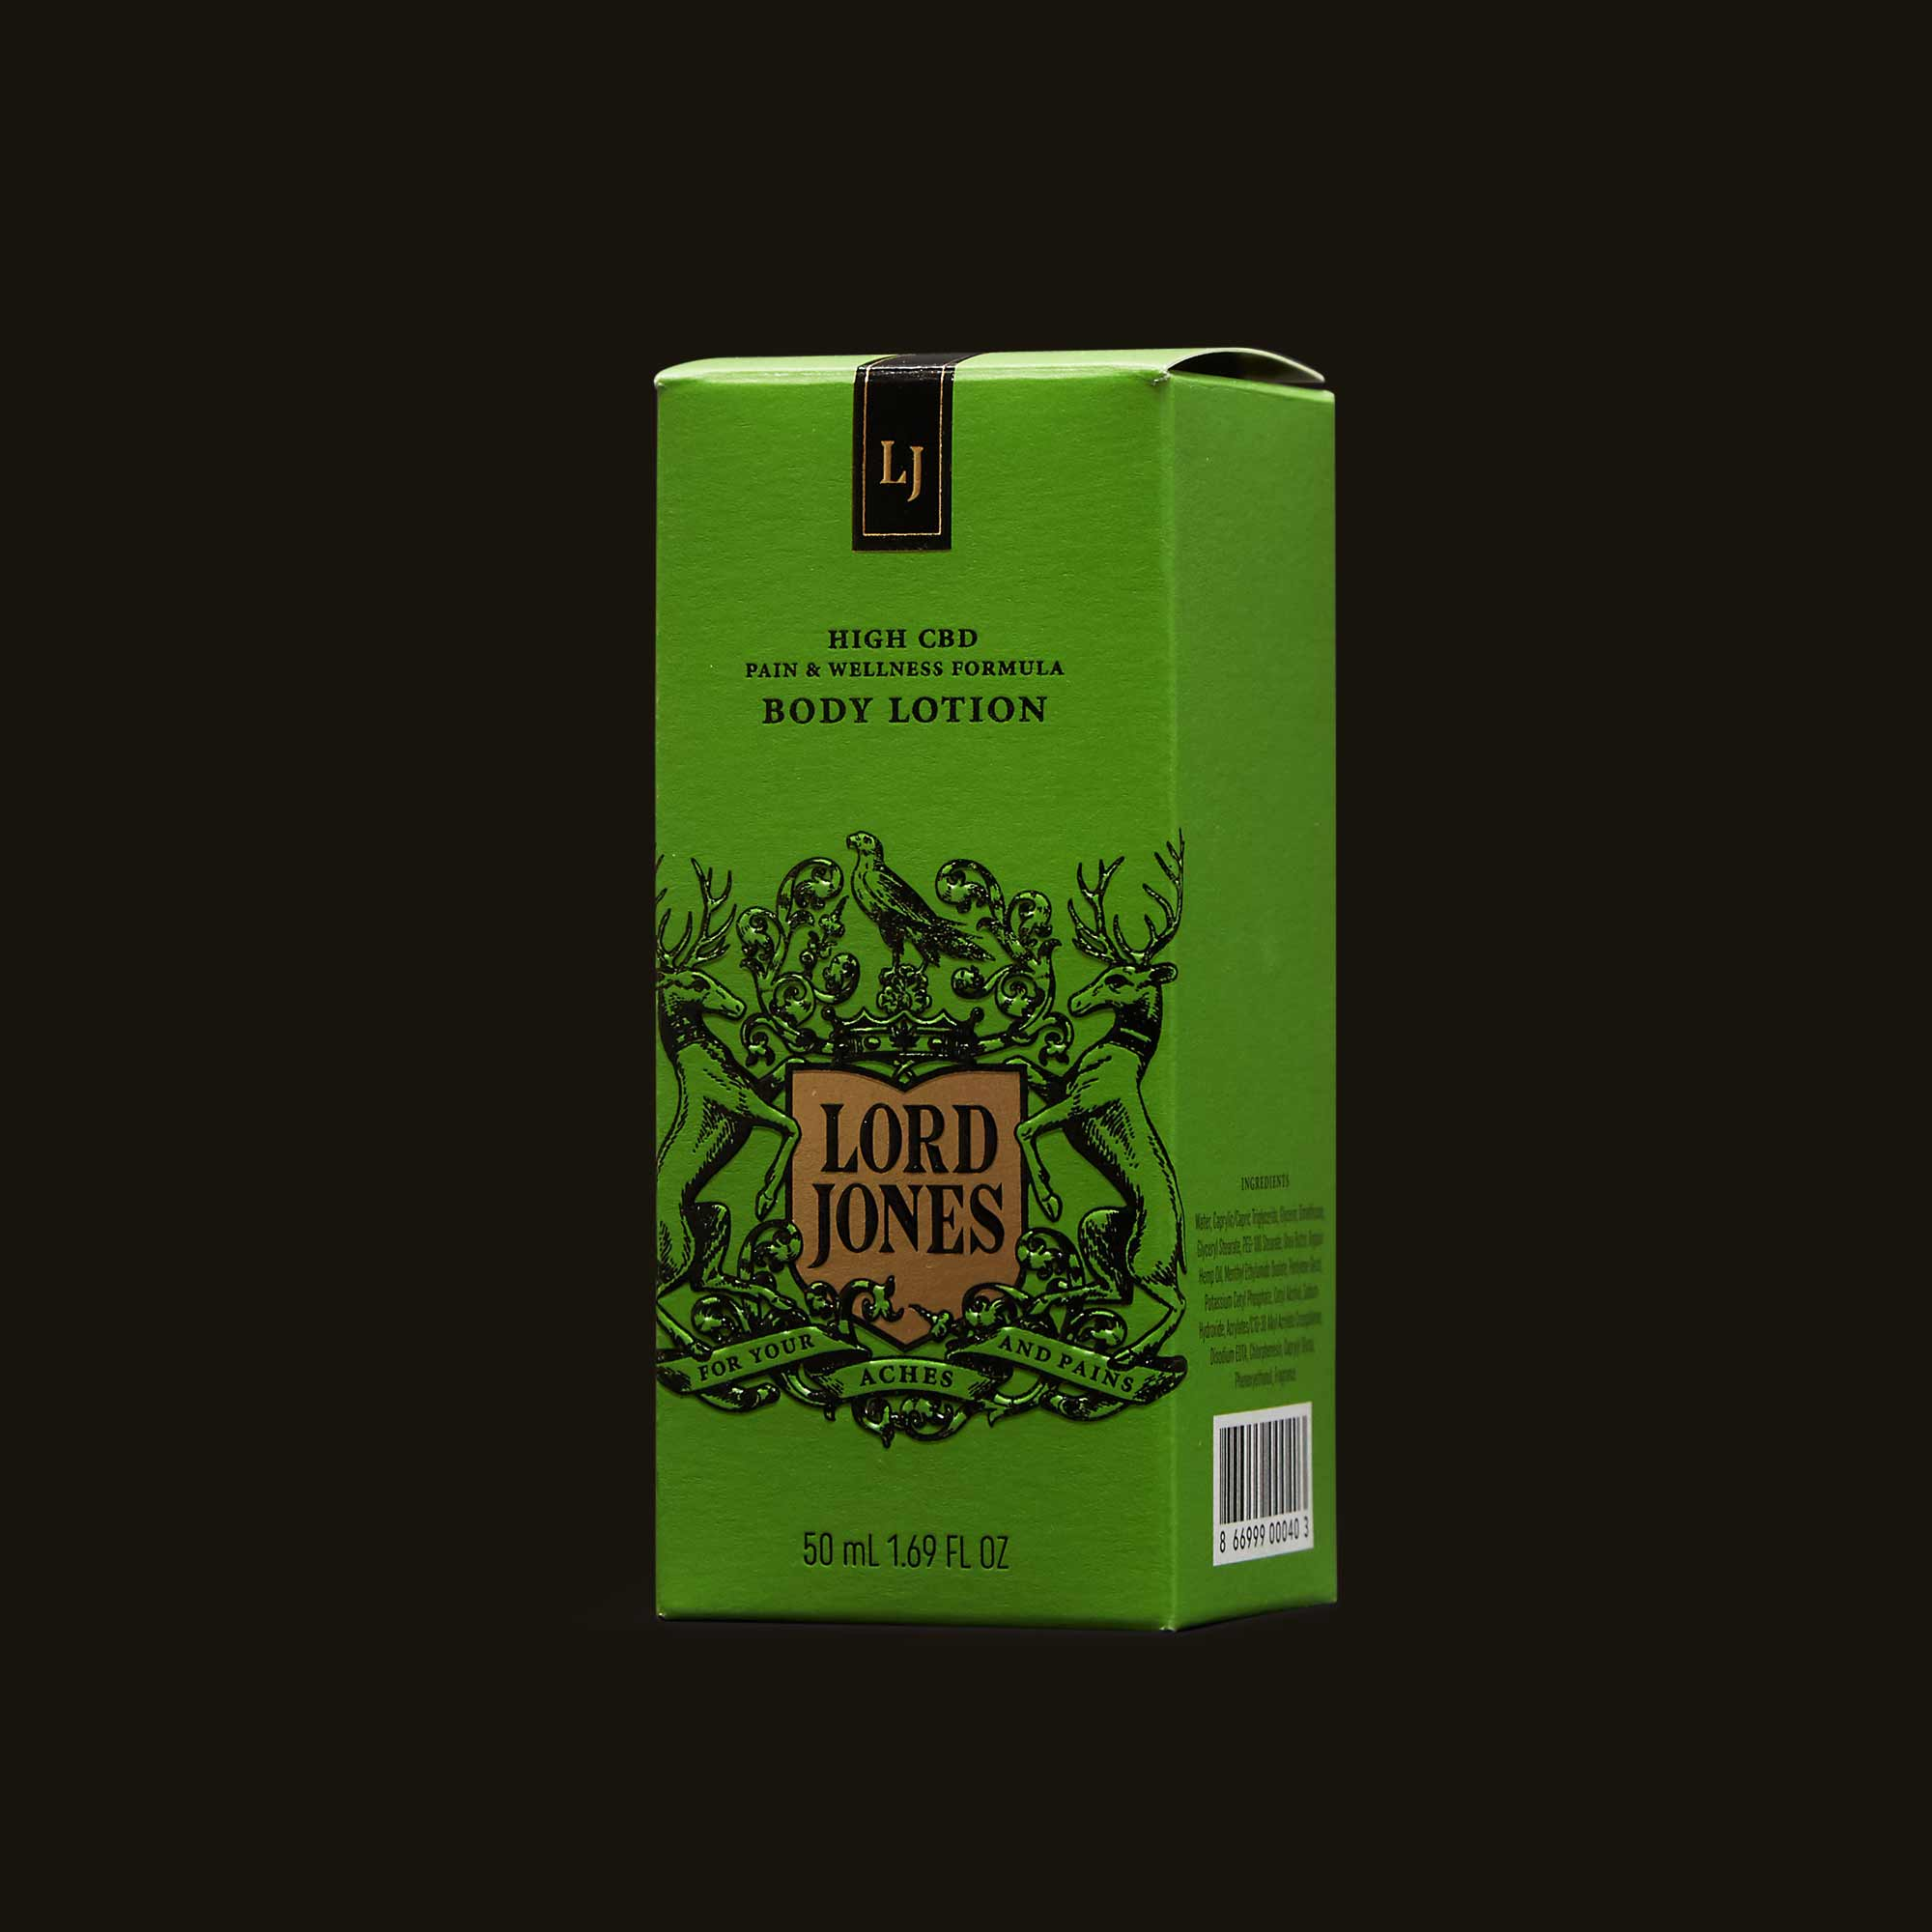 Lord Jones Body Lotion - Fragrance Free